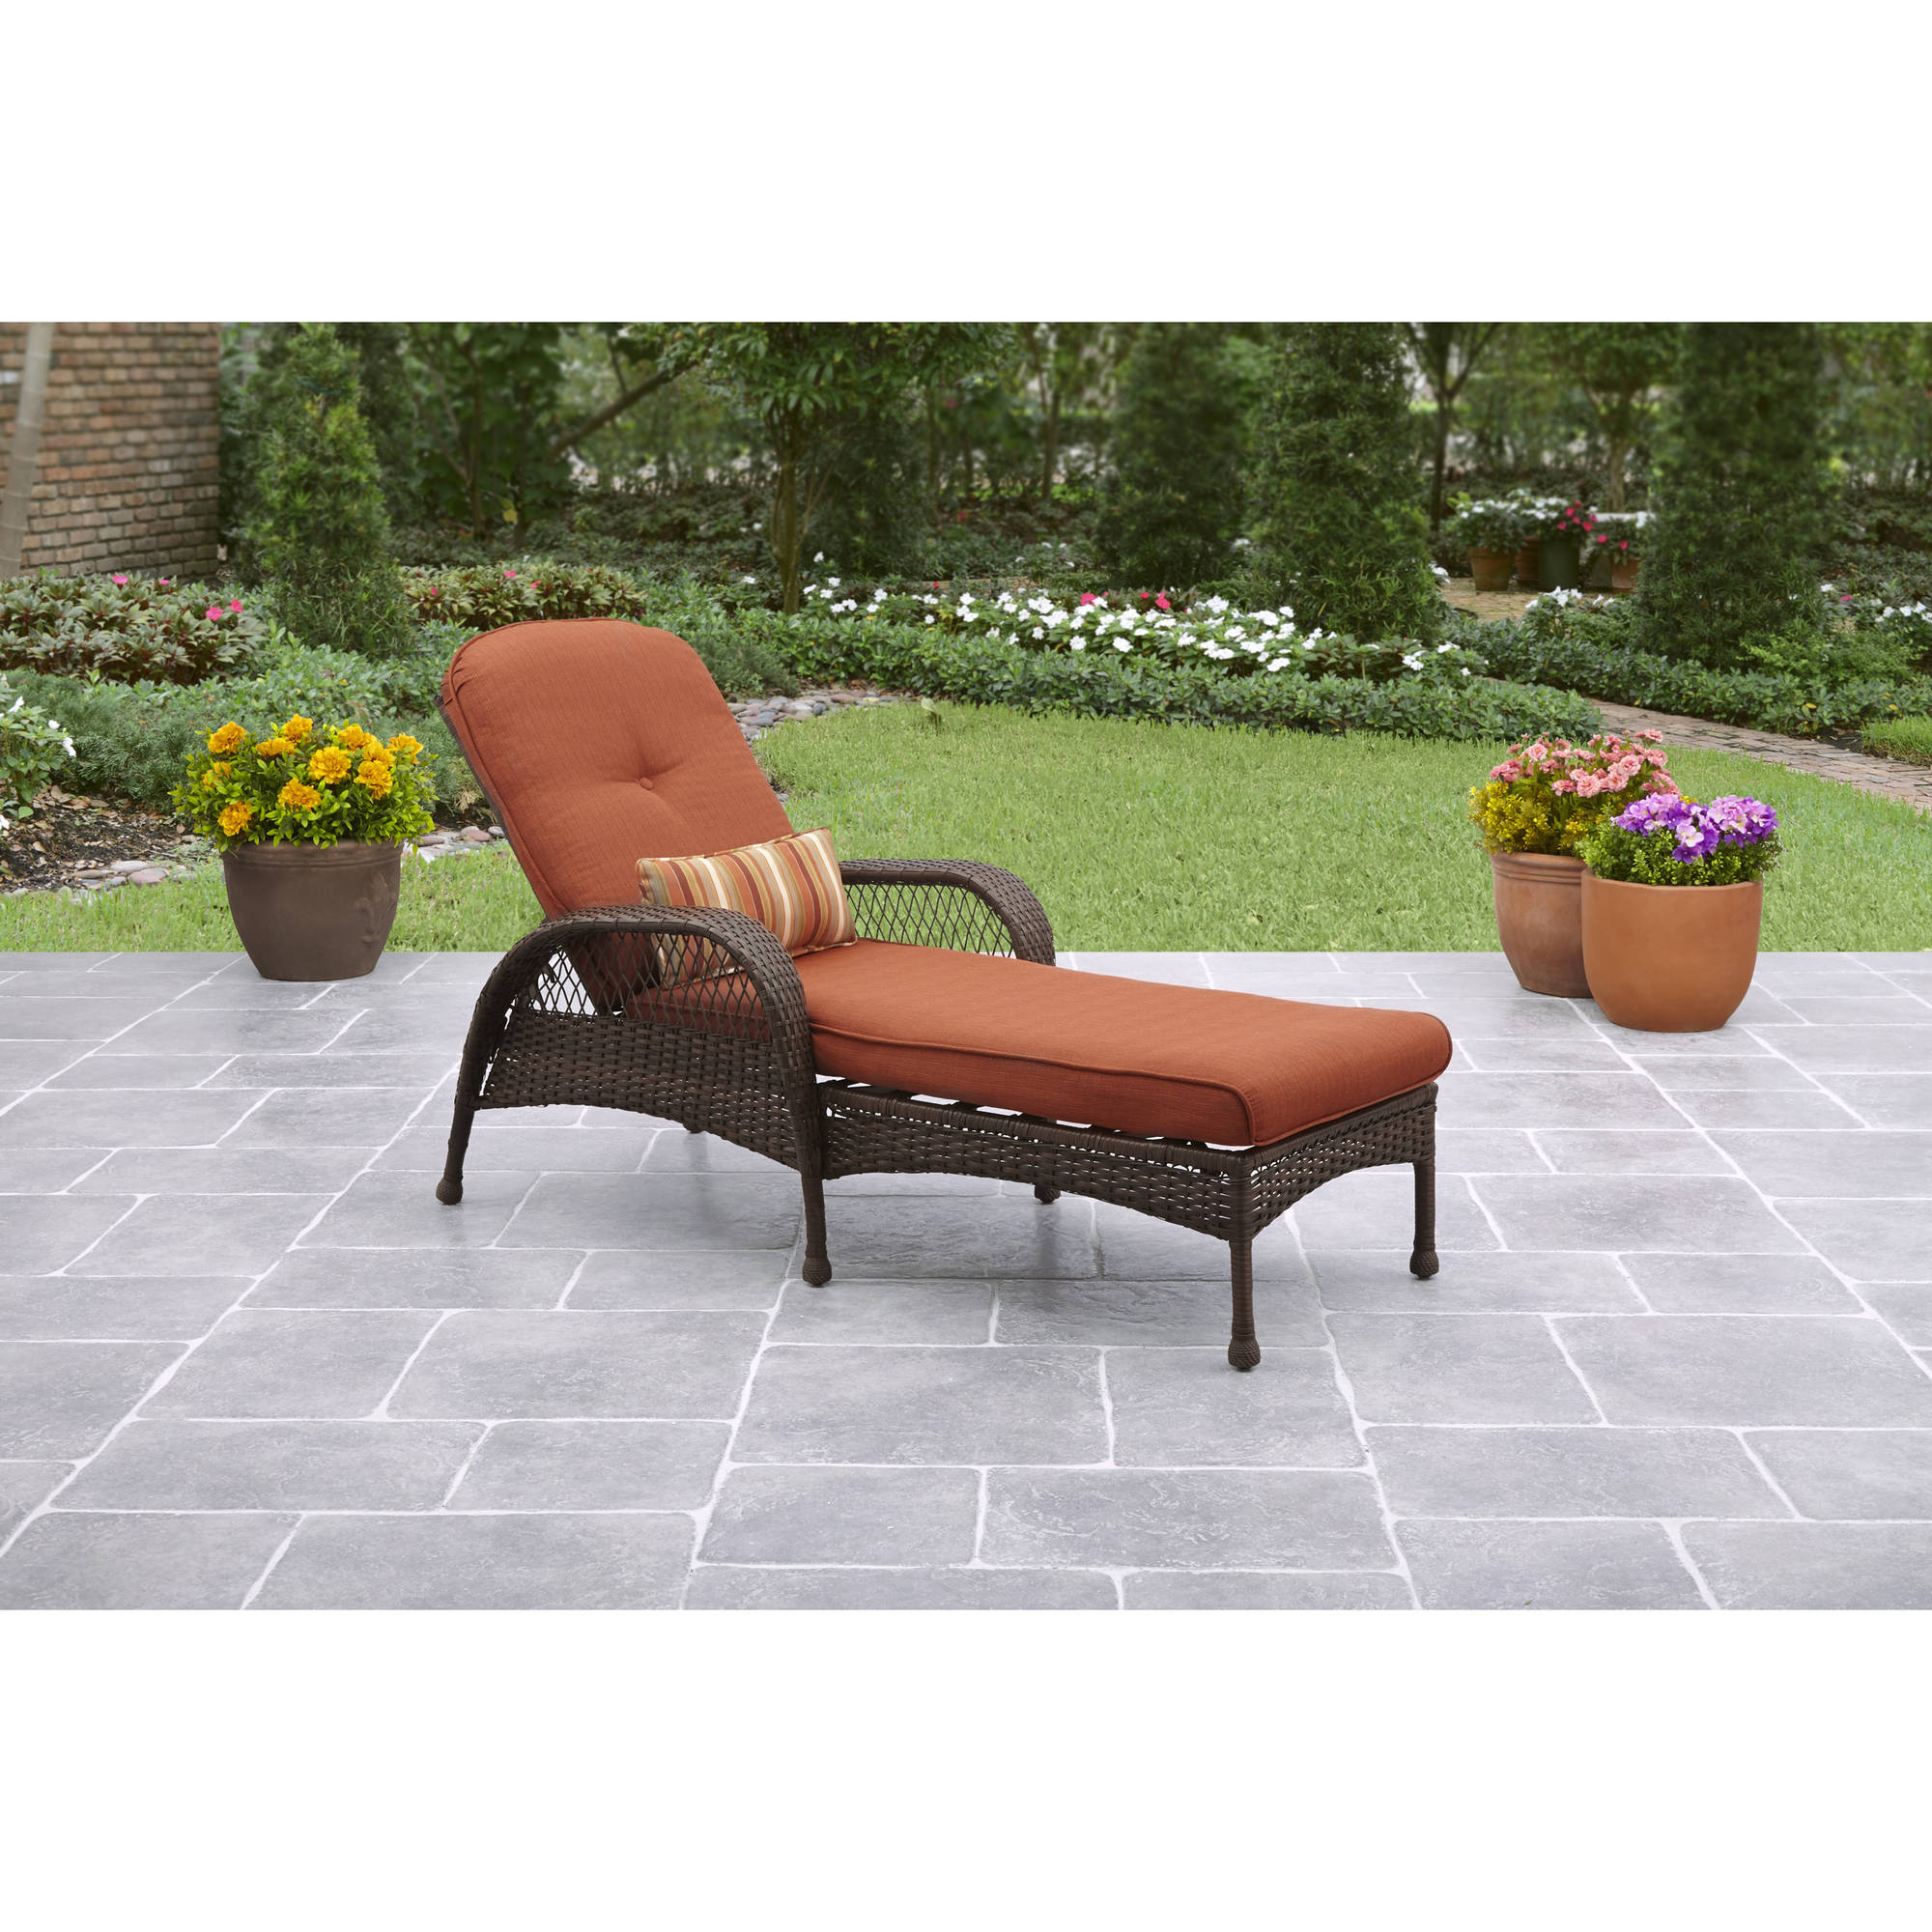 Better Homes and Gardens Azalea Ridge Outdoor Chaise Lounge